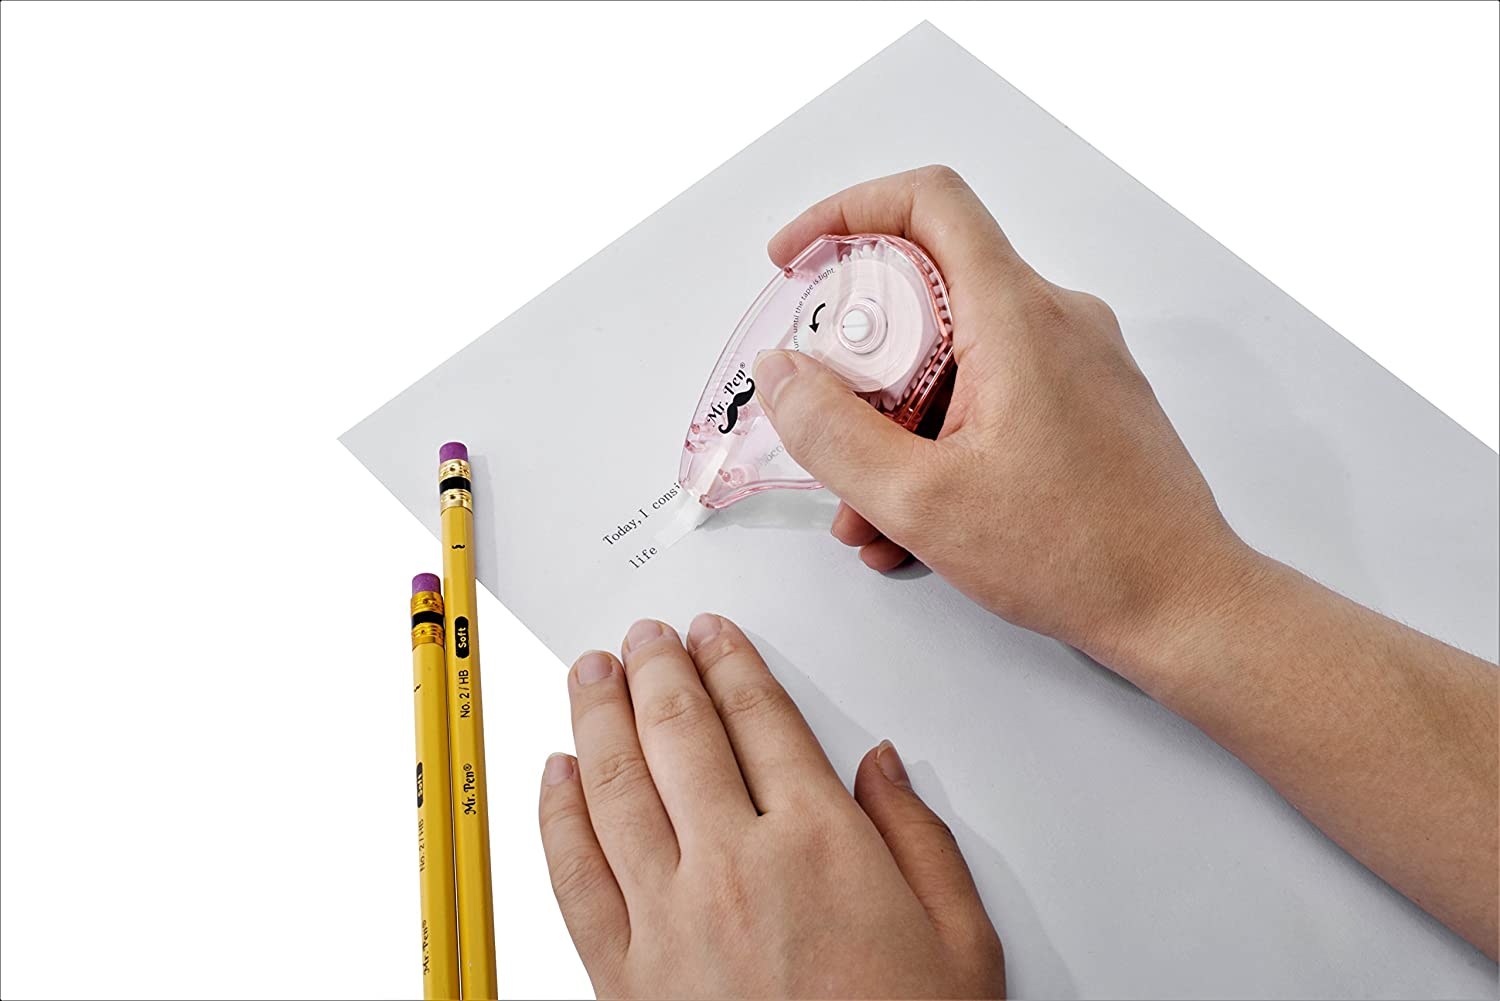 Mr Pen- Correction Tapes, Pack of 7, Correction Tape White Tape, Tape Eraser, White Correction Tape, White Tape, White Out, Wipe Out Tape, Wide Out Tape, Correction Tape Wide, Correction Tape Eraser : Office Products